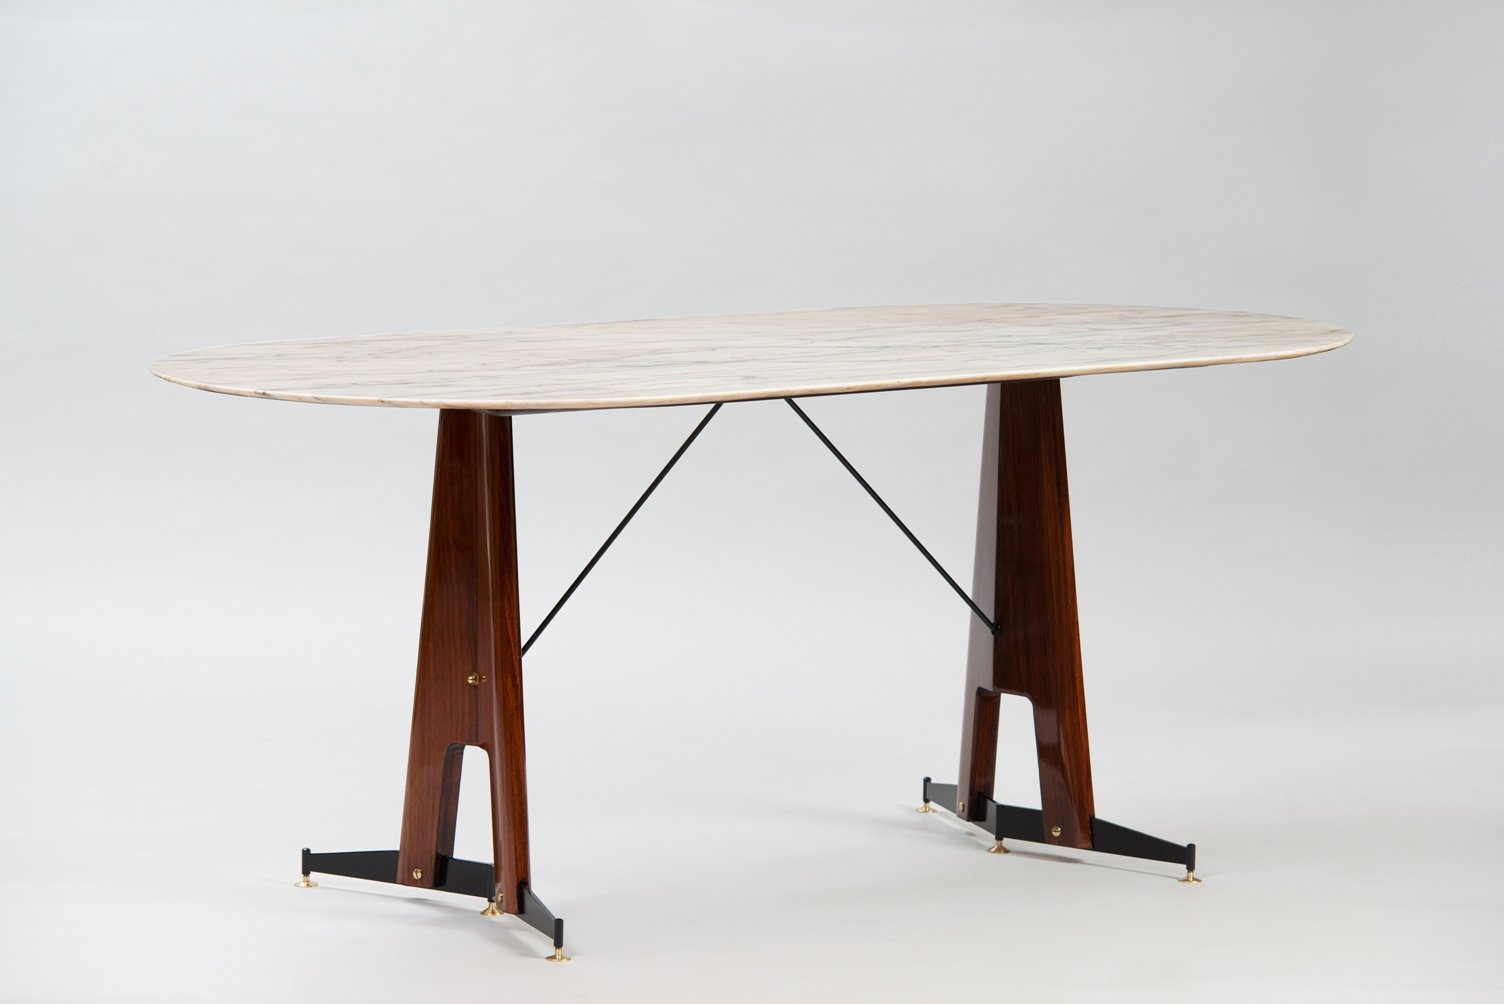 Best table salle a manger marbre design ideas lalawgroup - Table salle a manger 8 personnes ...